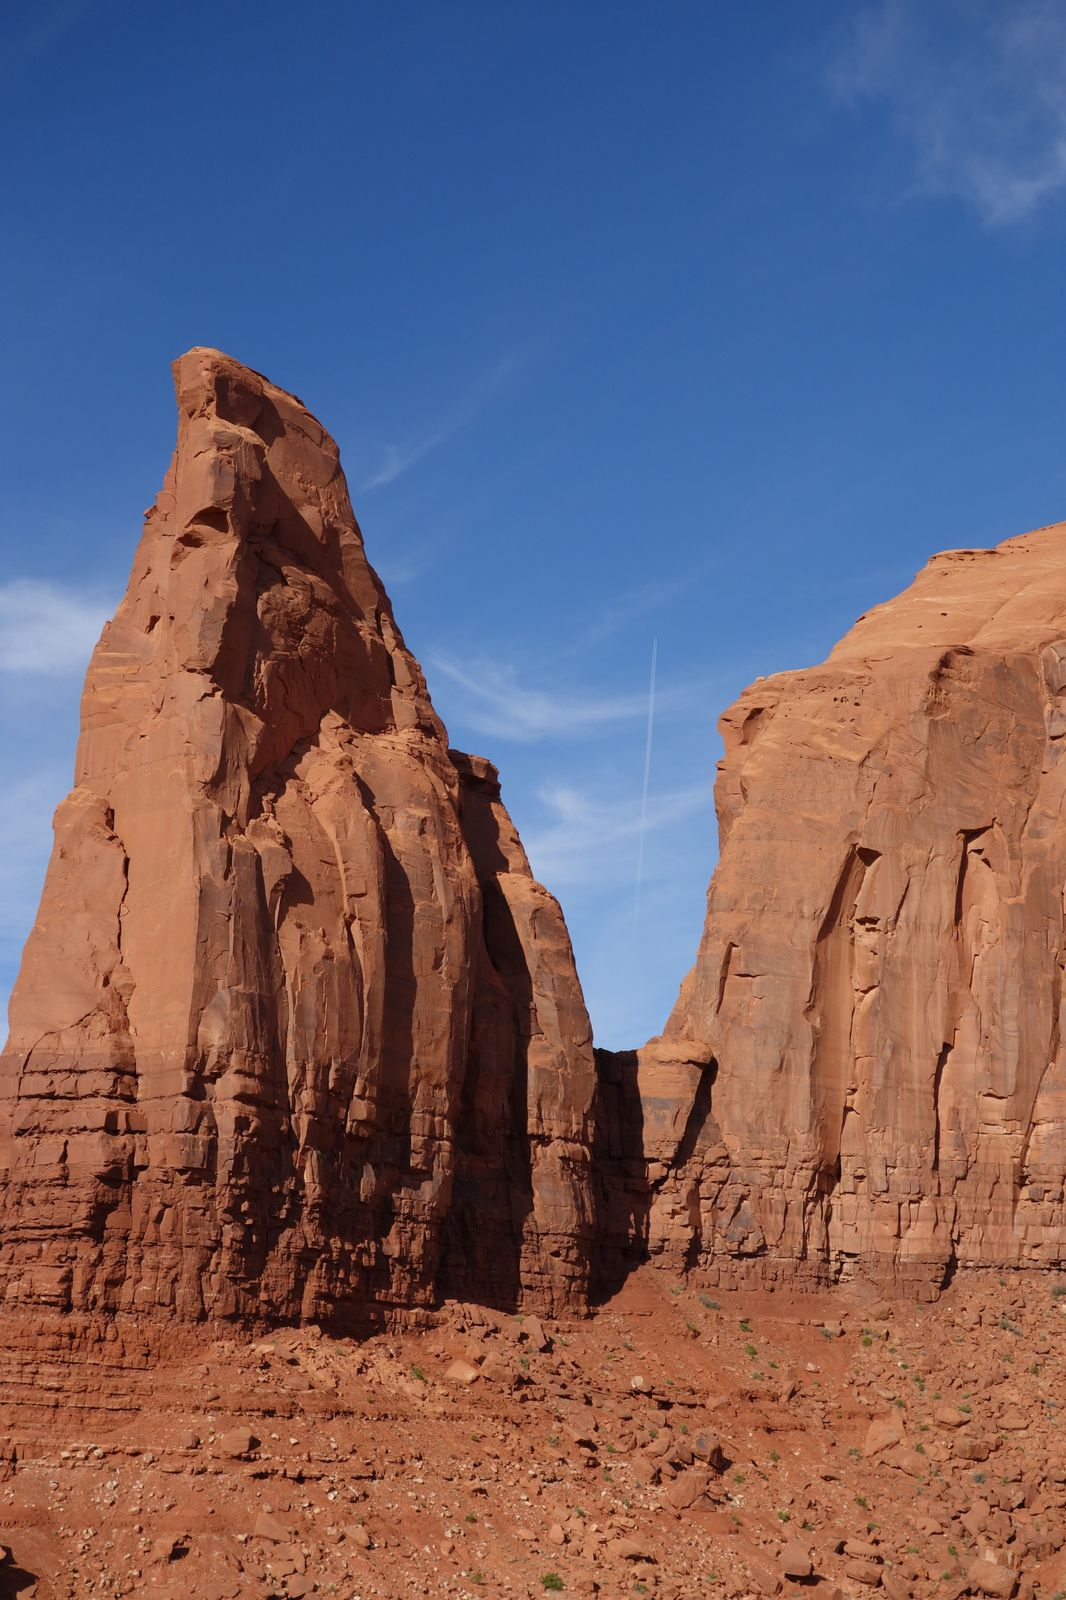 Day 4: Monument Valley